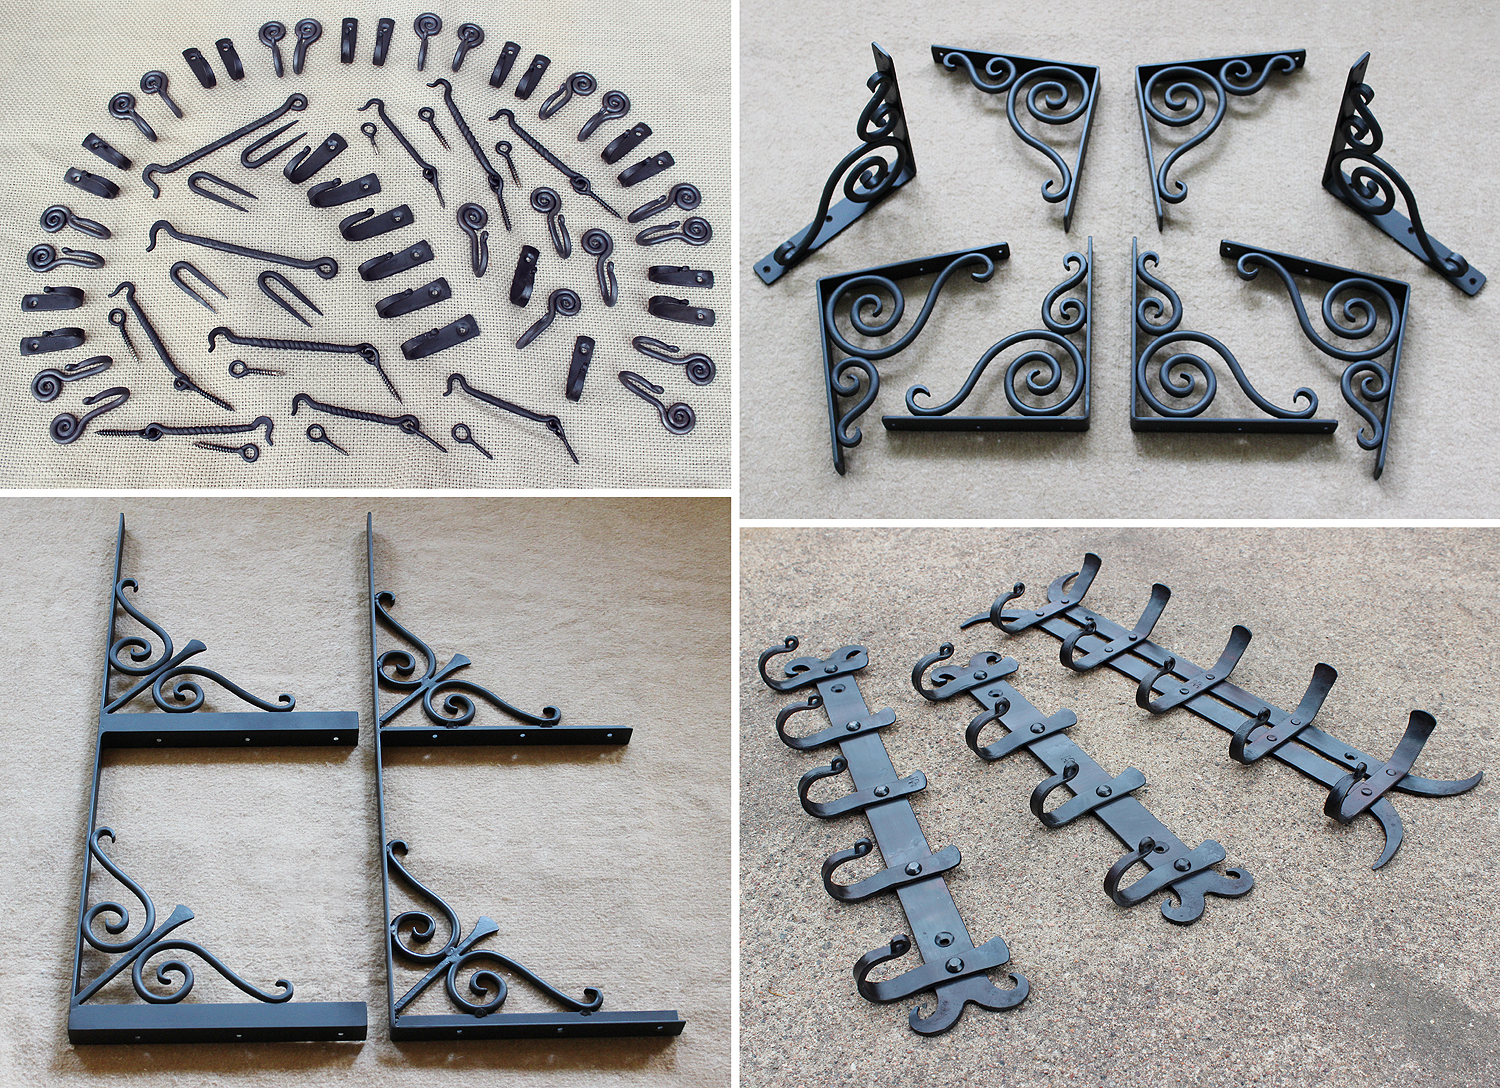 Forged objects 18 by Astalo